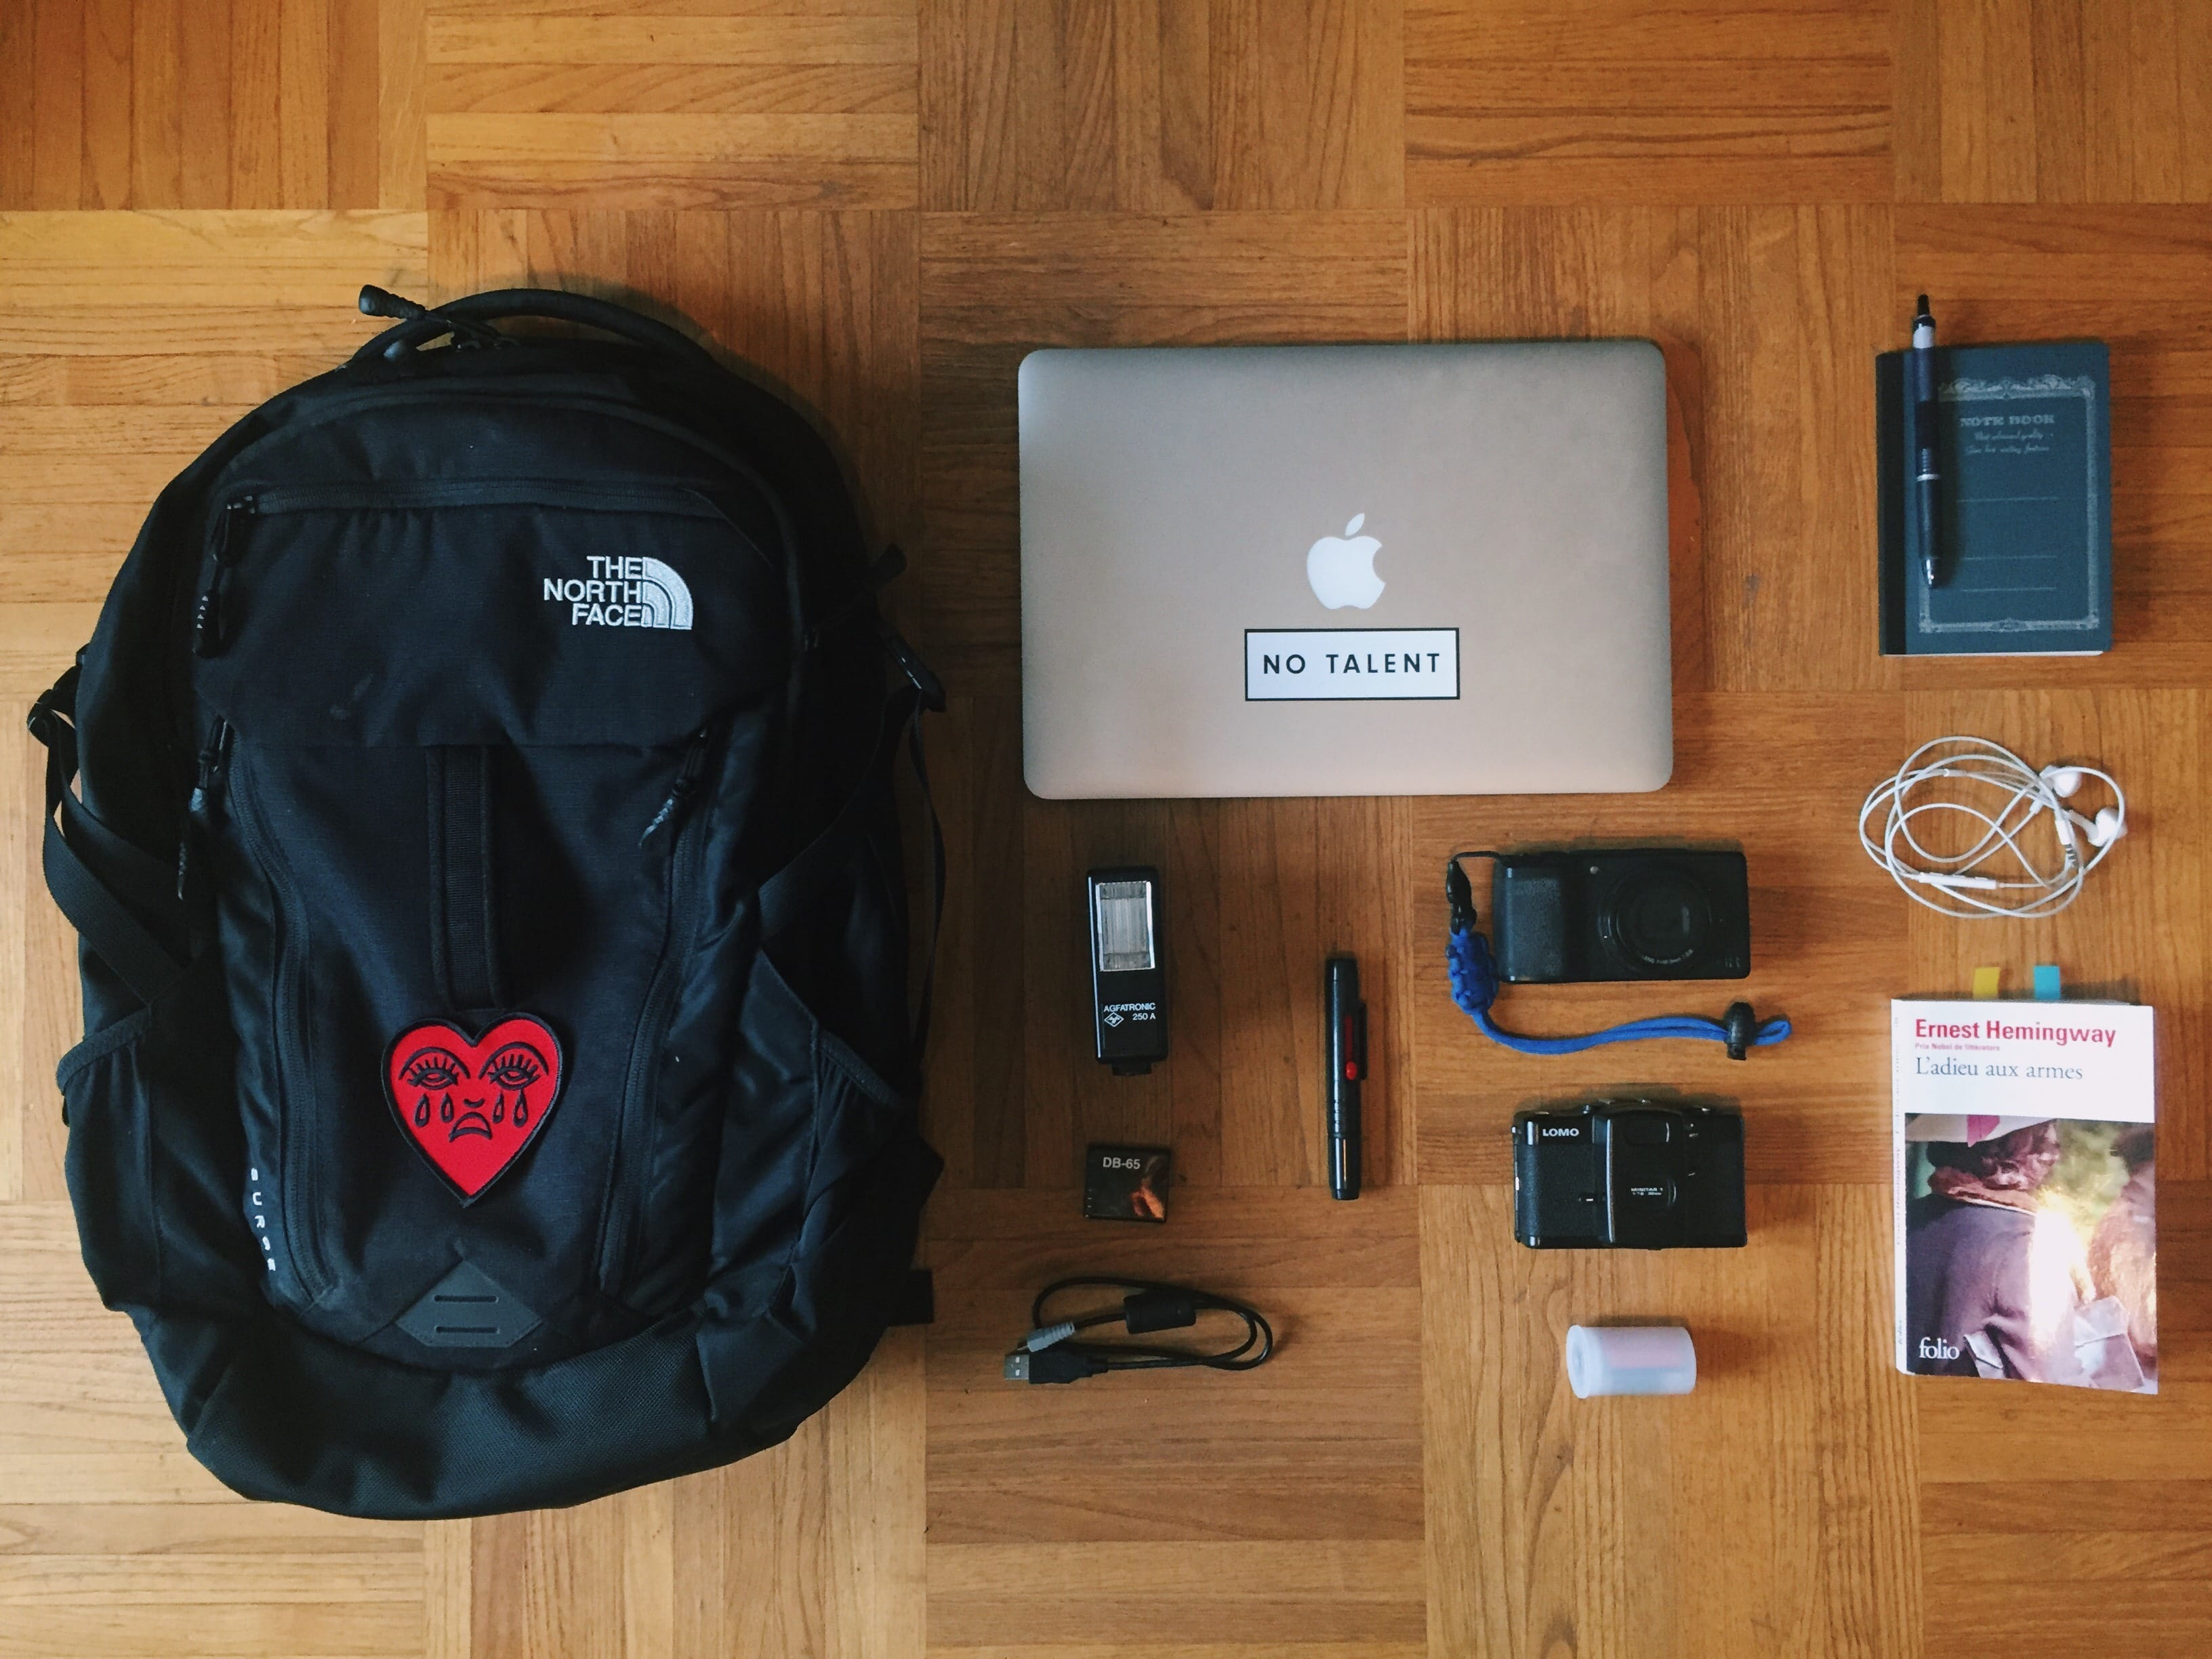 Arnaud Bicand's Camera Bag - Bag No. 149